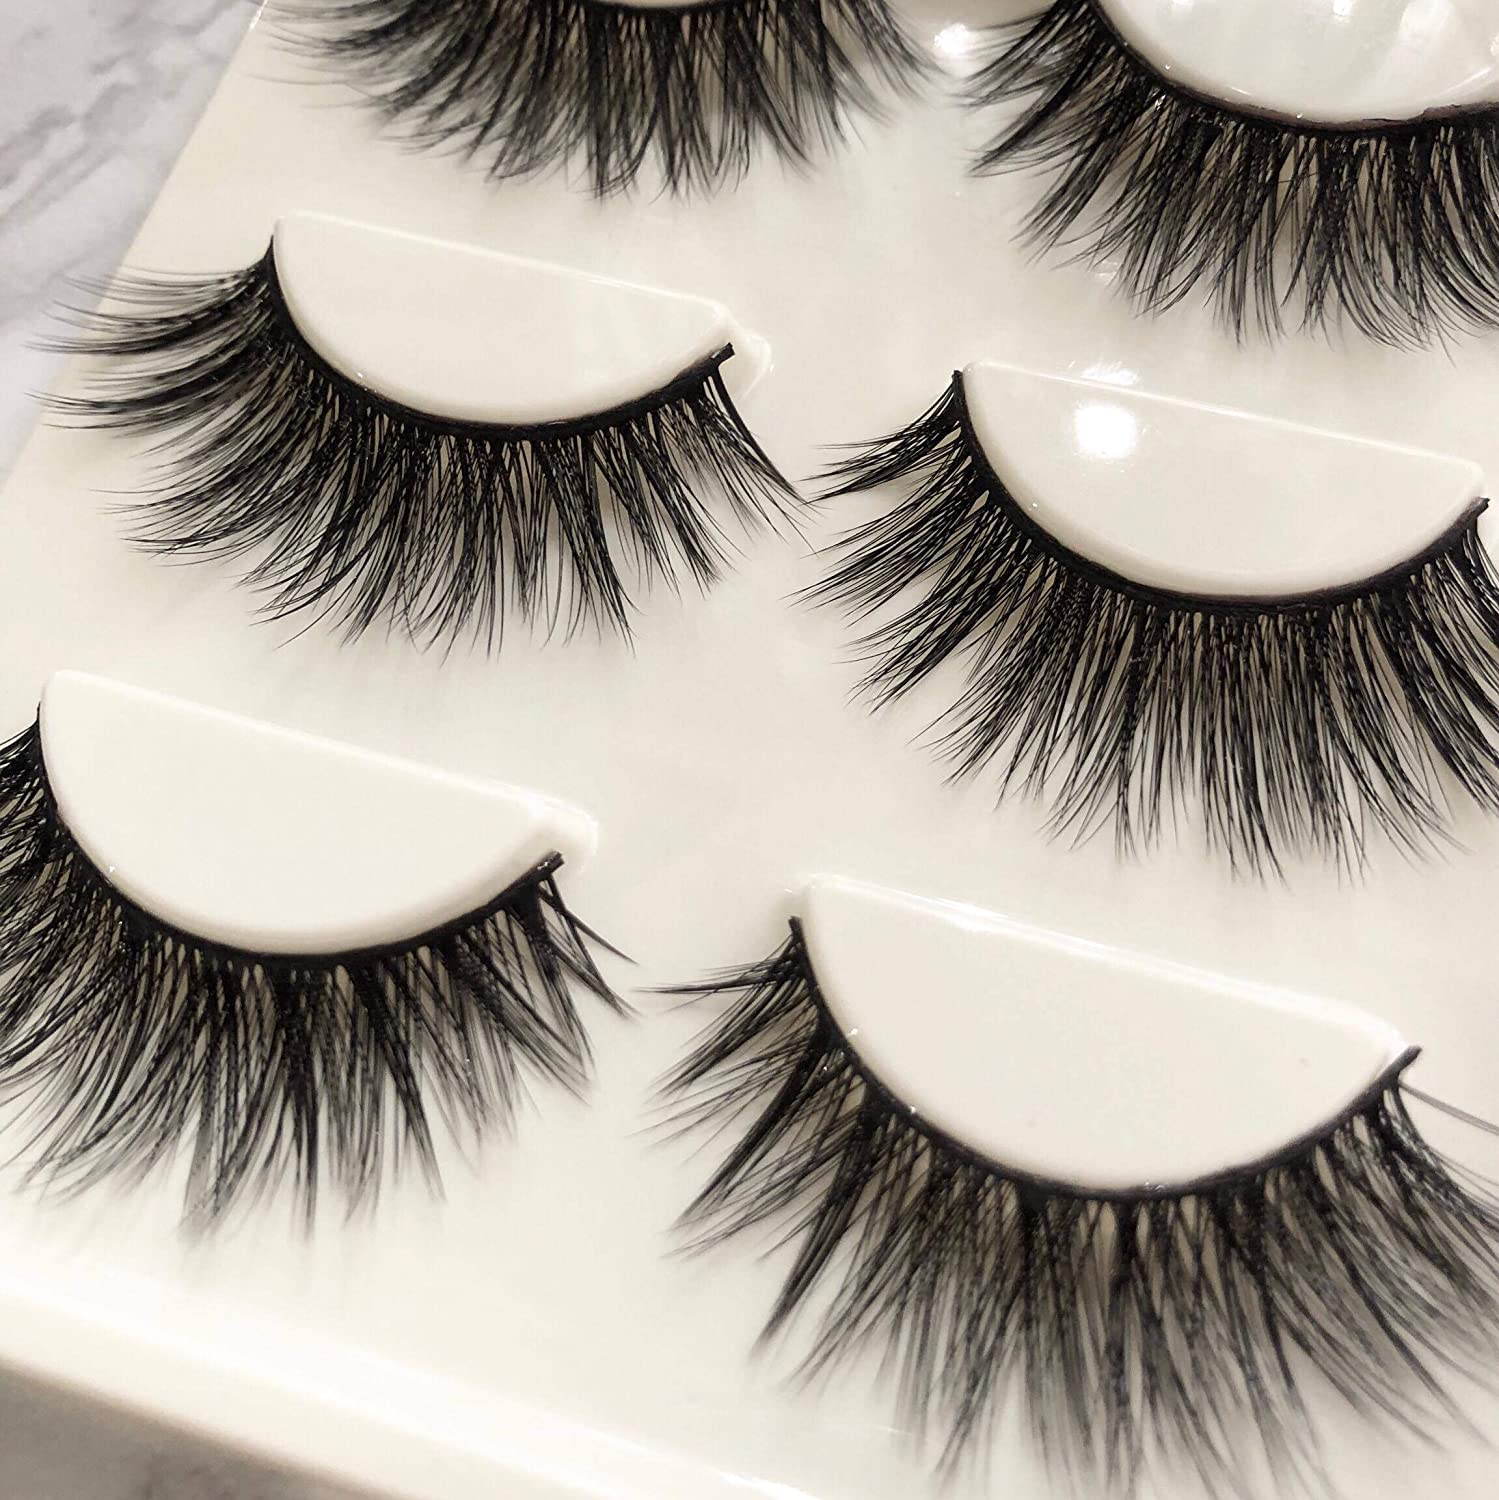 0c7dc8ce89d LUXIE LASHES 3D Luxury Fluffy Faux Mink Natural Strip Fake Long Eyelashes  Multipack - 3 Pairs Pack ...